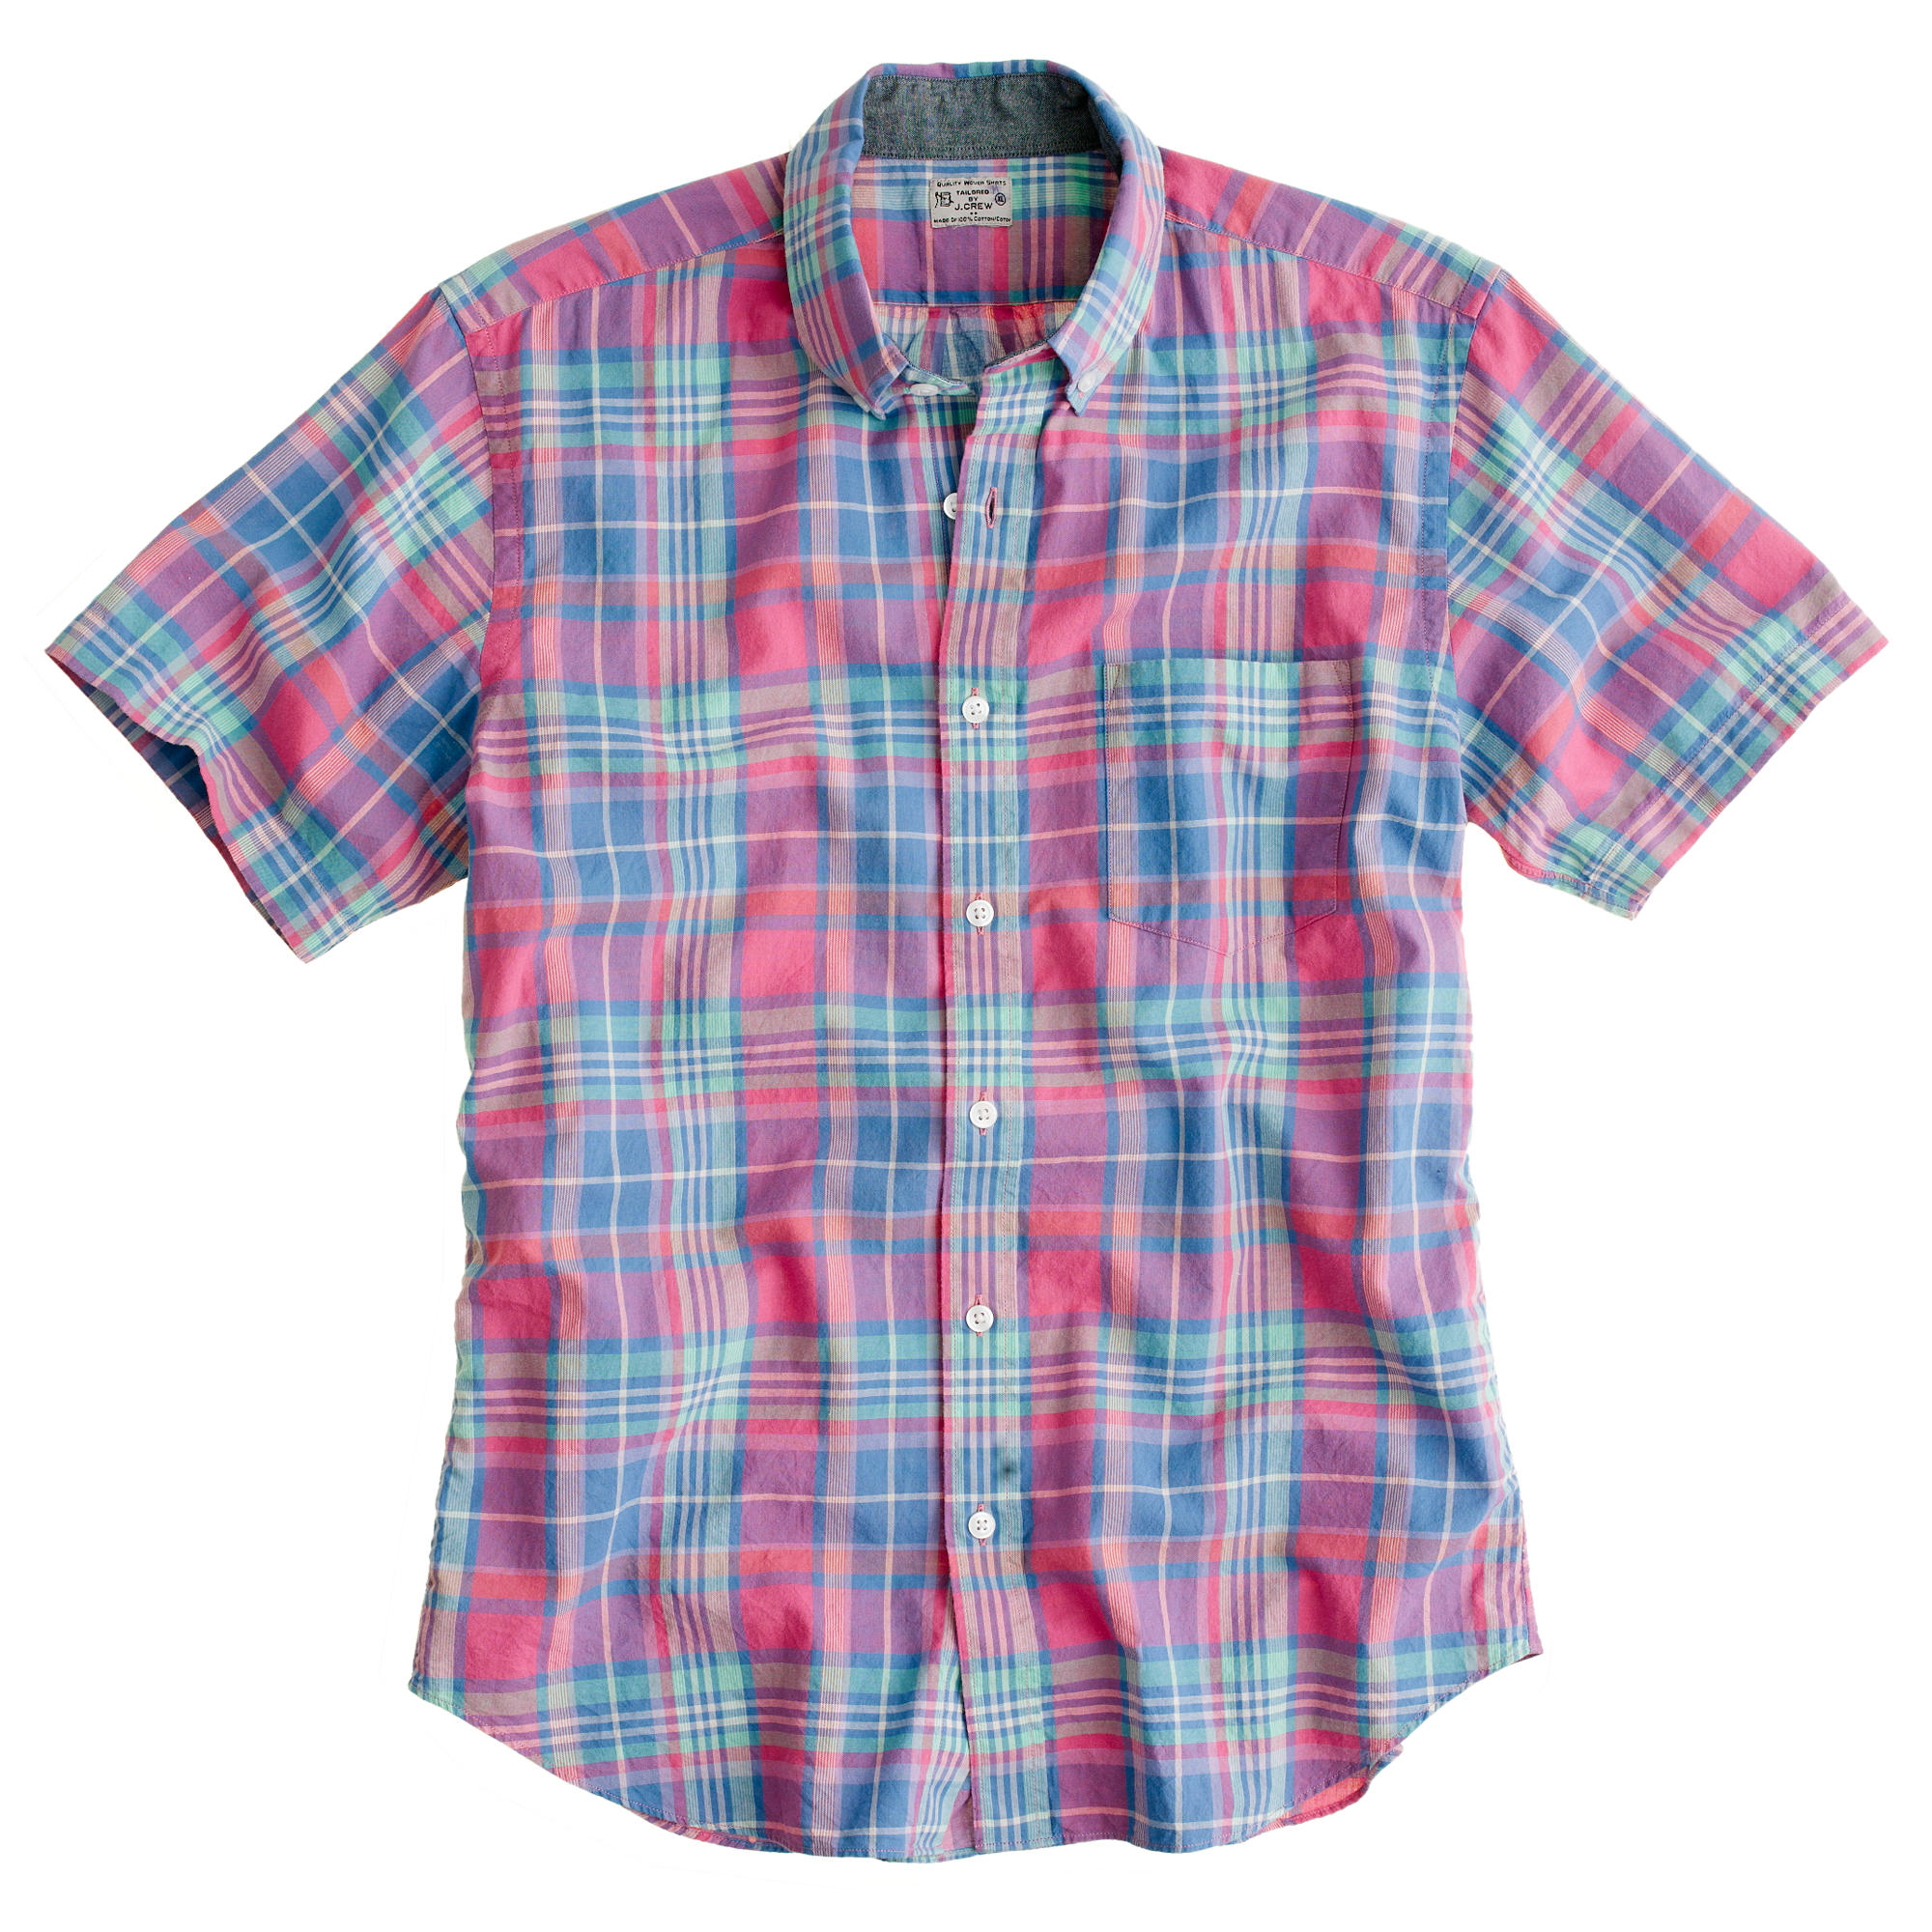 Indian cotton short sleeve shirt in bryn plaid j crew Short sleeve plaid shirts